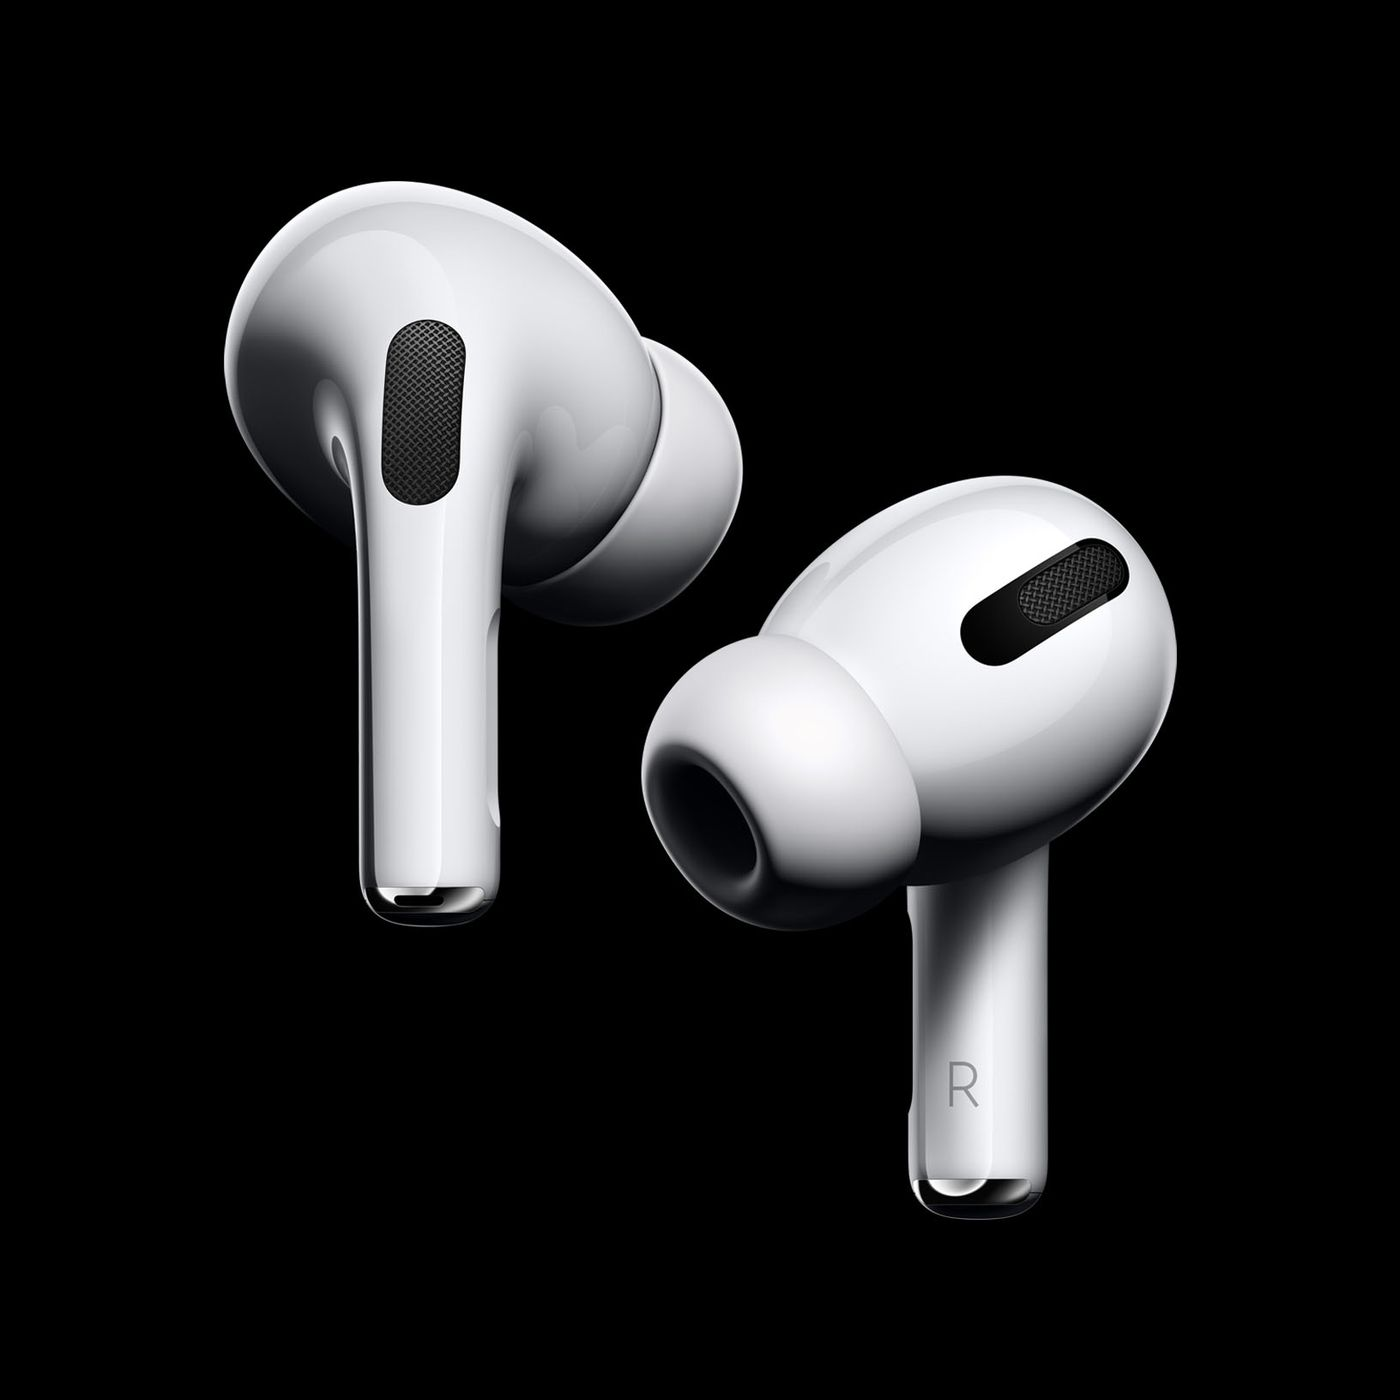 Apple Announces Airpods Pro With Noise Cancellation Coming